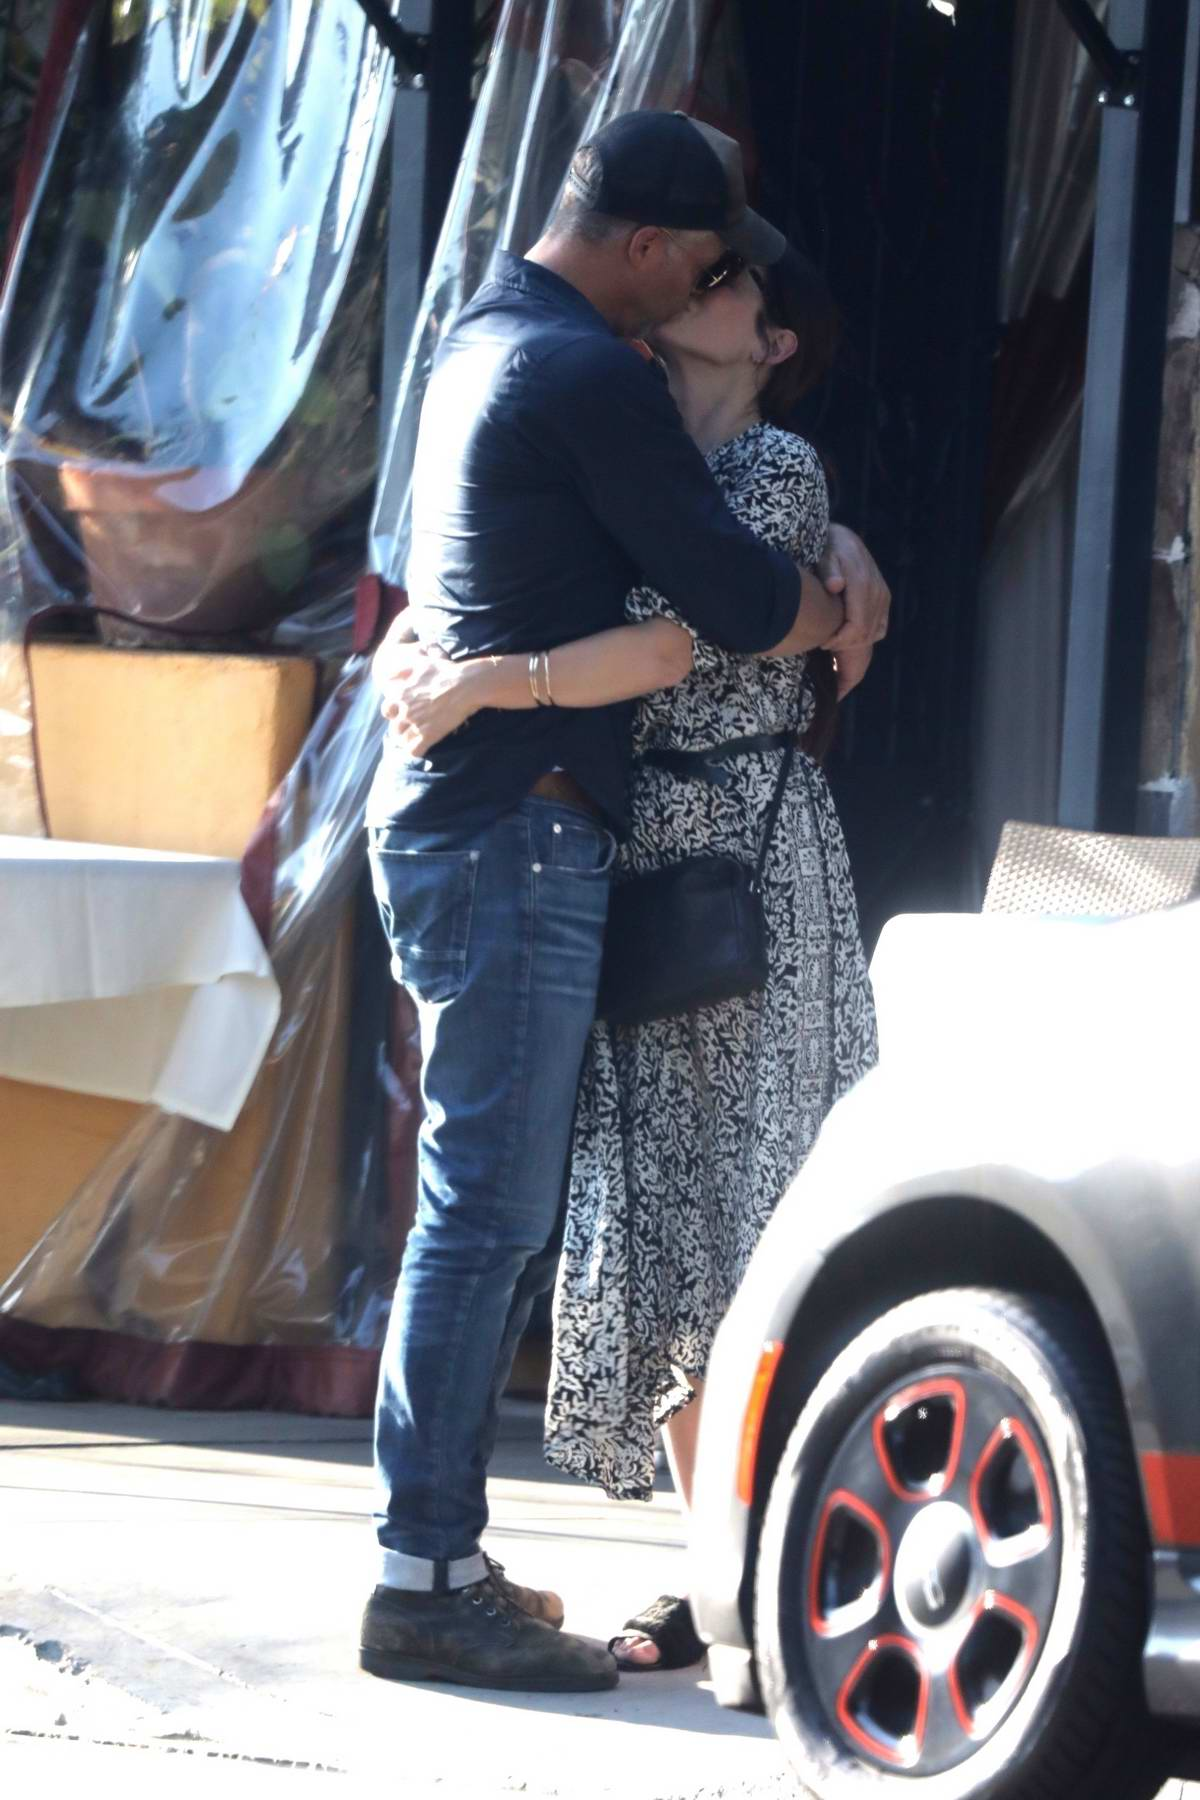 Sandra Bullock and boyfriend Bryan Randall gets cozy while out in Beverly Hills, Los Angeles